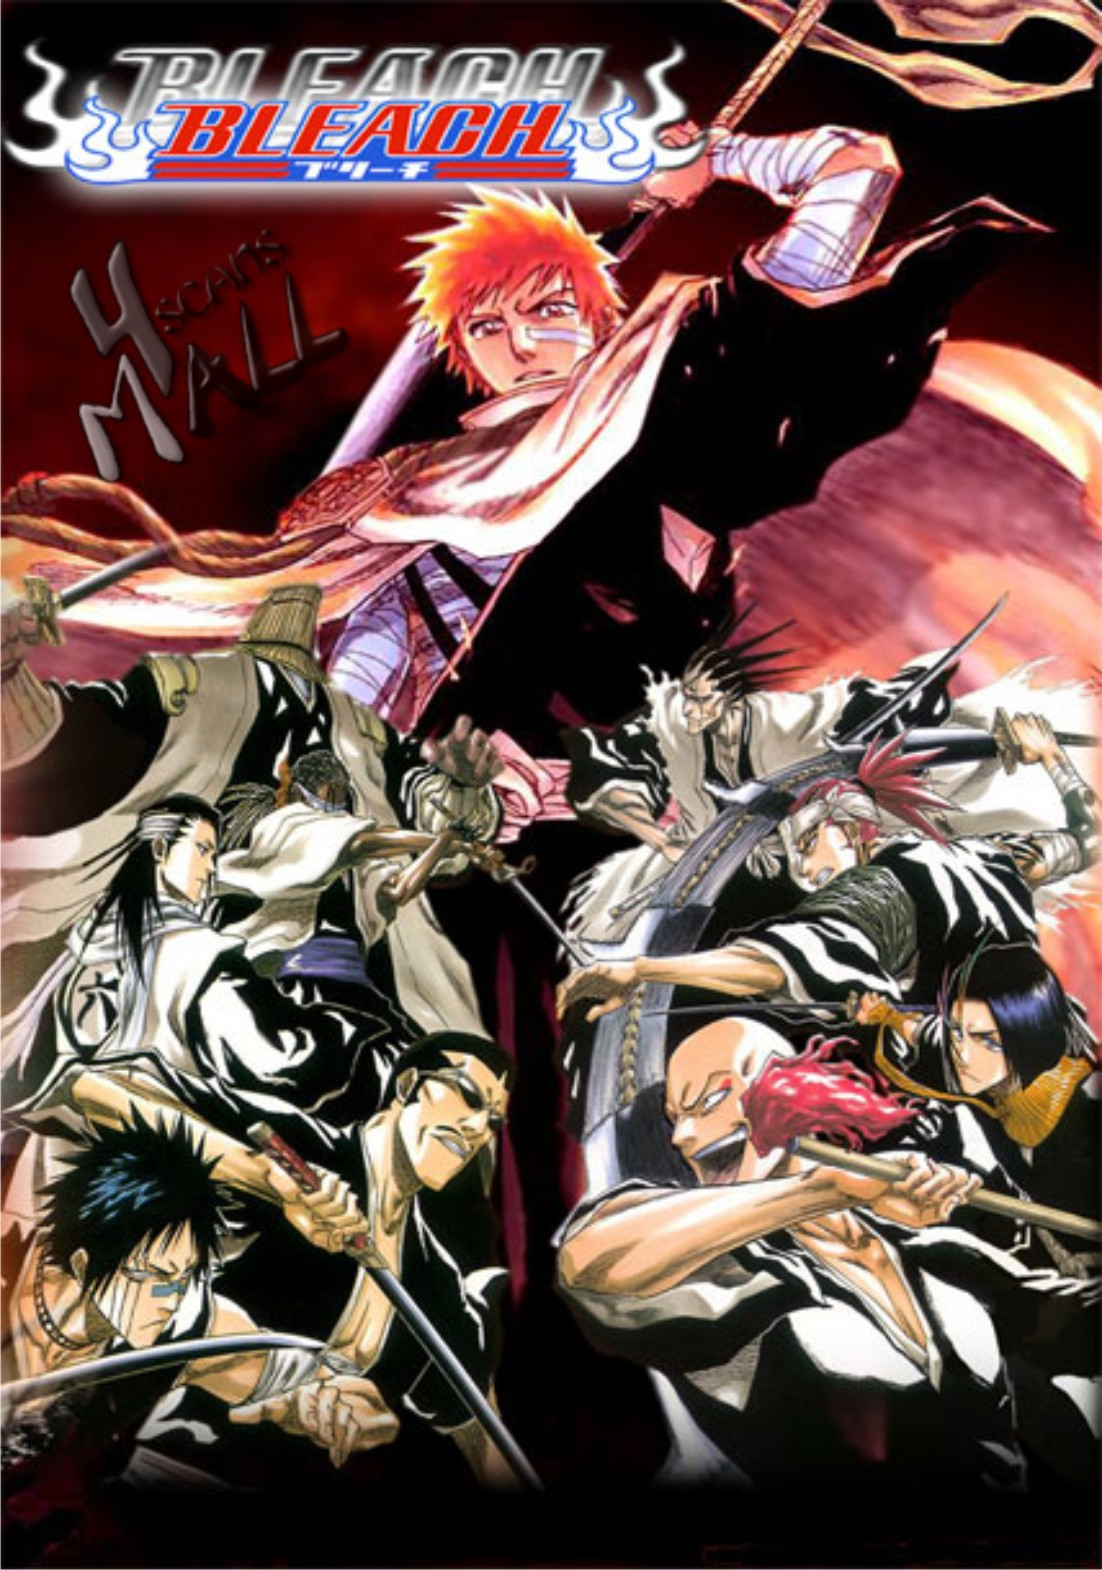 I would like an avatar of kurosaki isshin, ichigos father, in his shinigami outfit